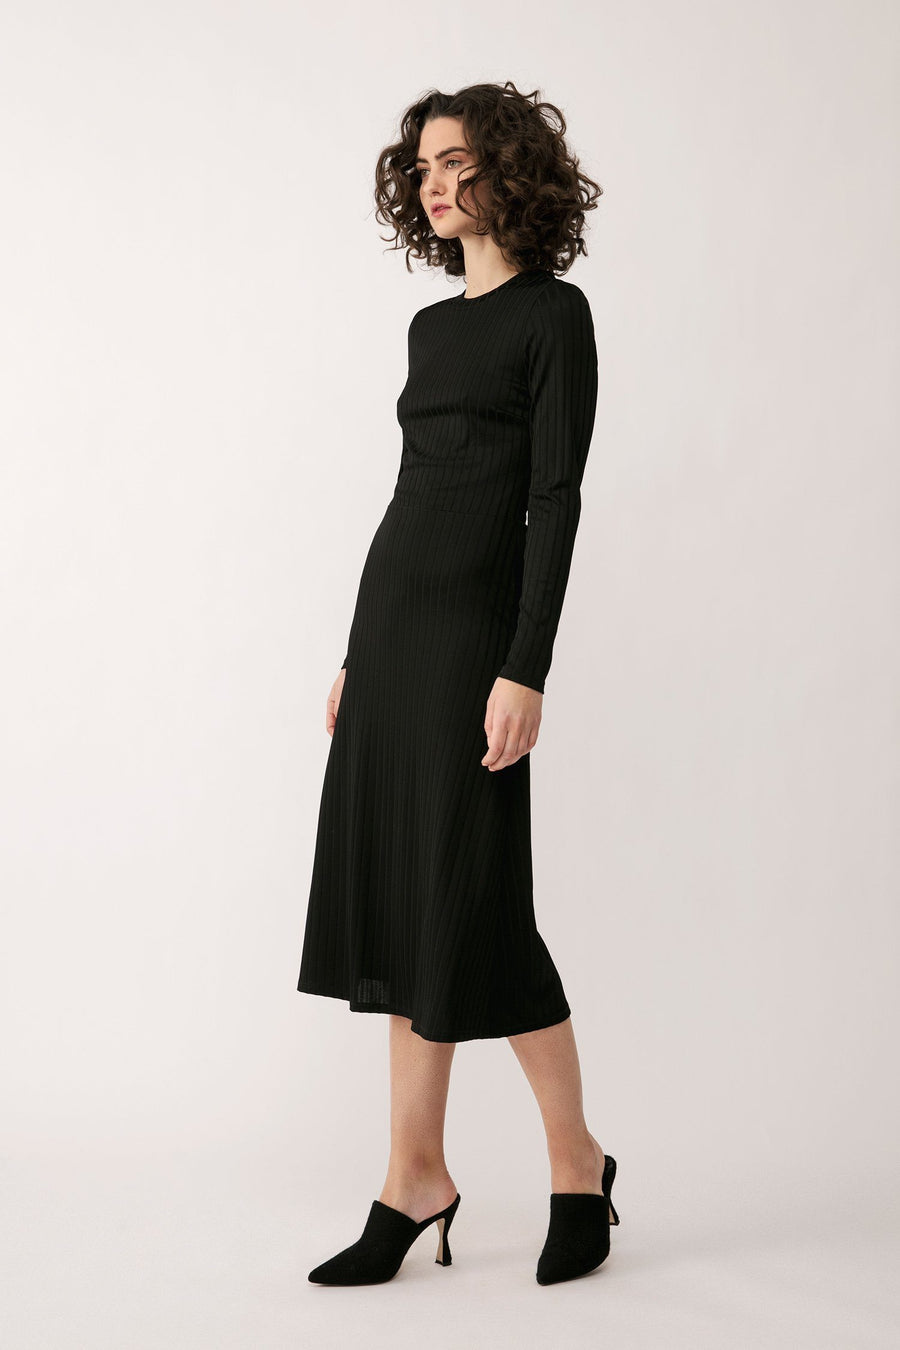 PALAZZO DRESS - BLACK Dress Stylein